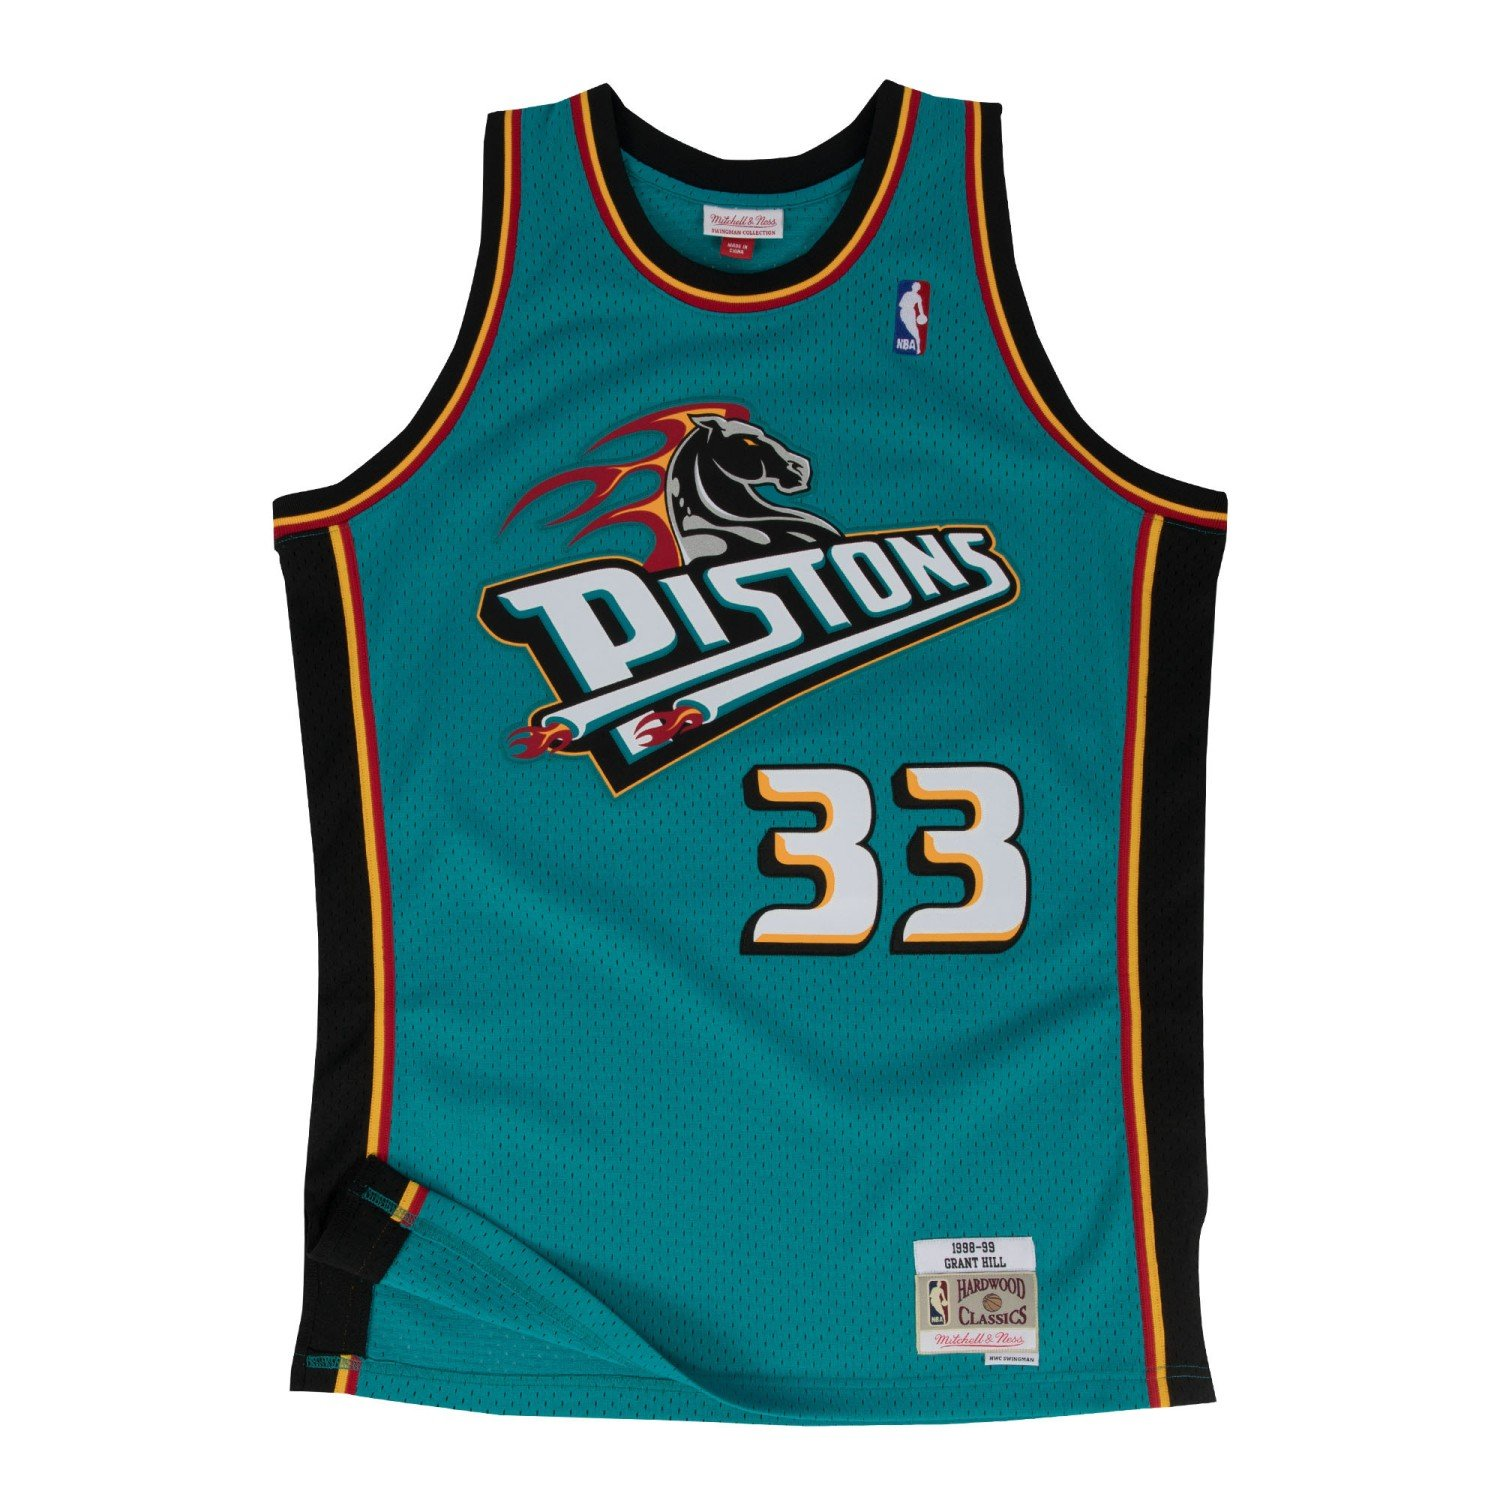 new products c9406 559cf Amazon.com : Mitchell & Ness Grant Hill Detroit Pistons NBA ...